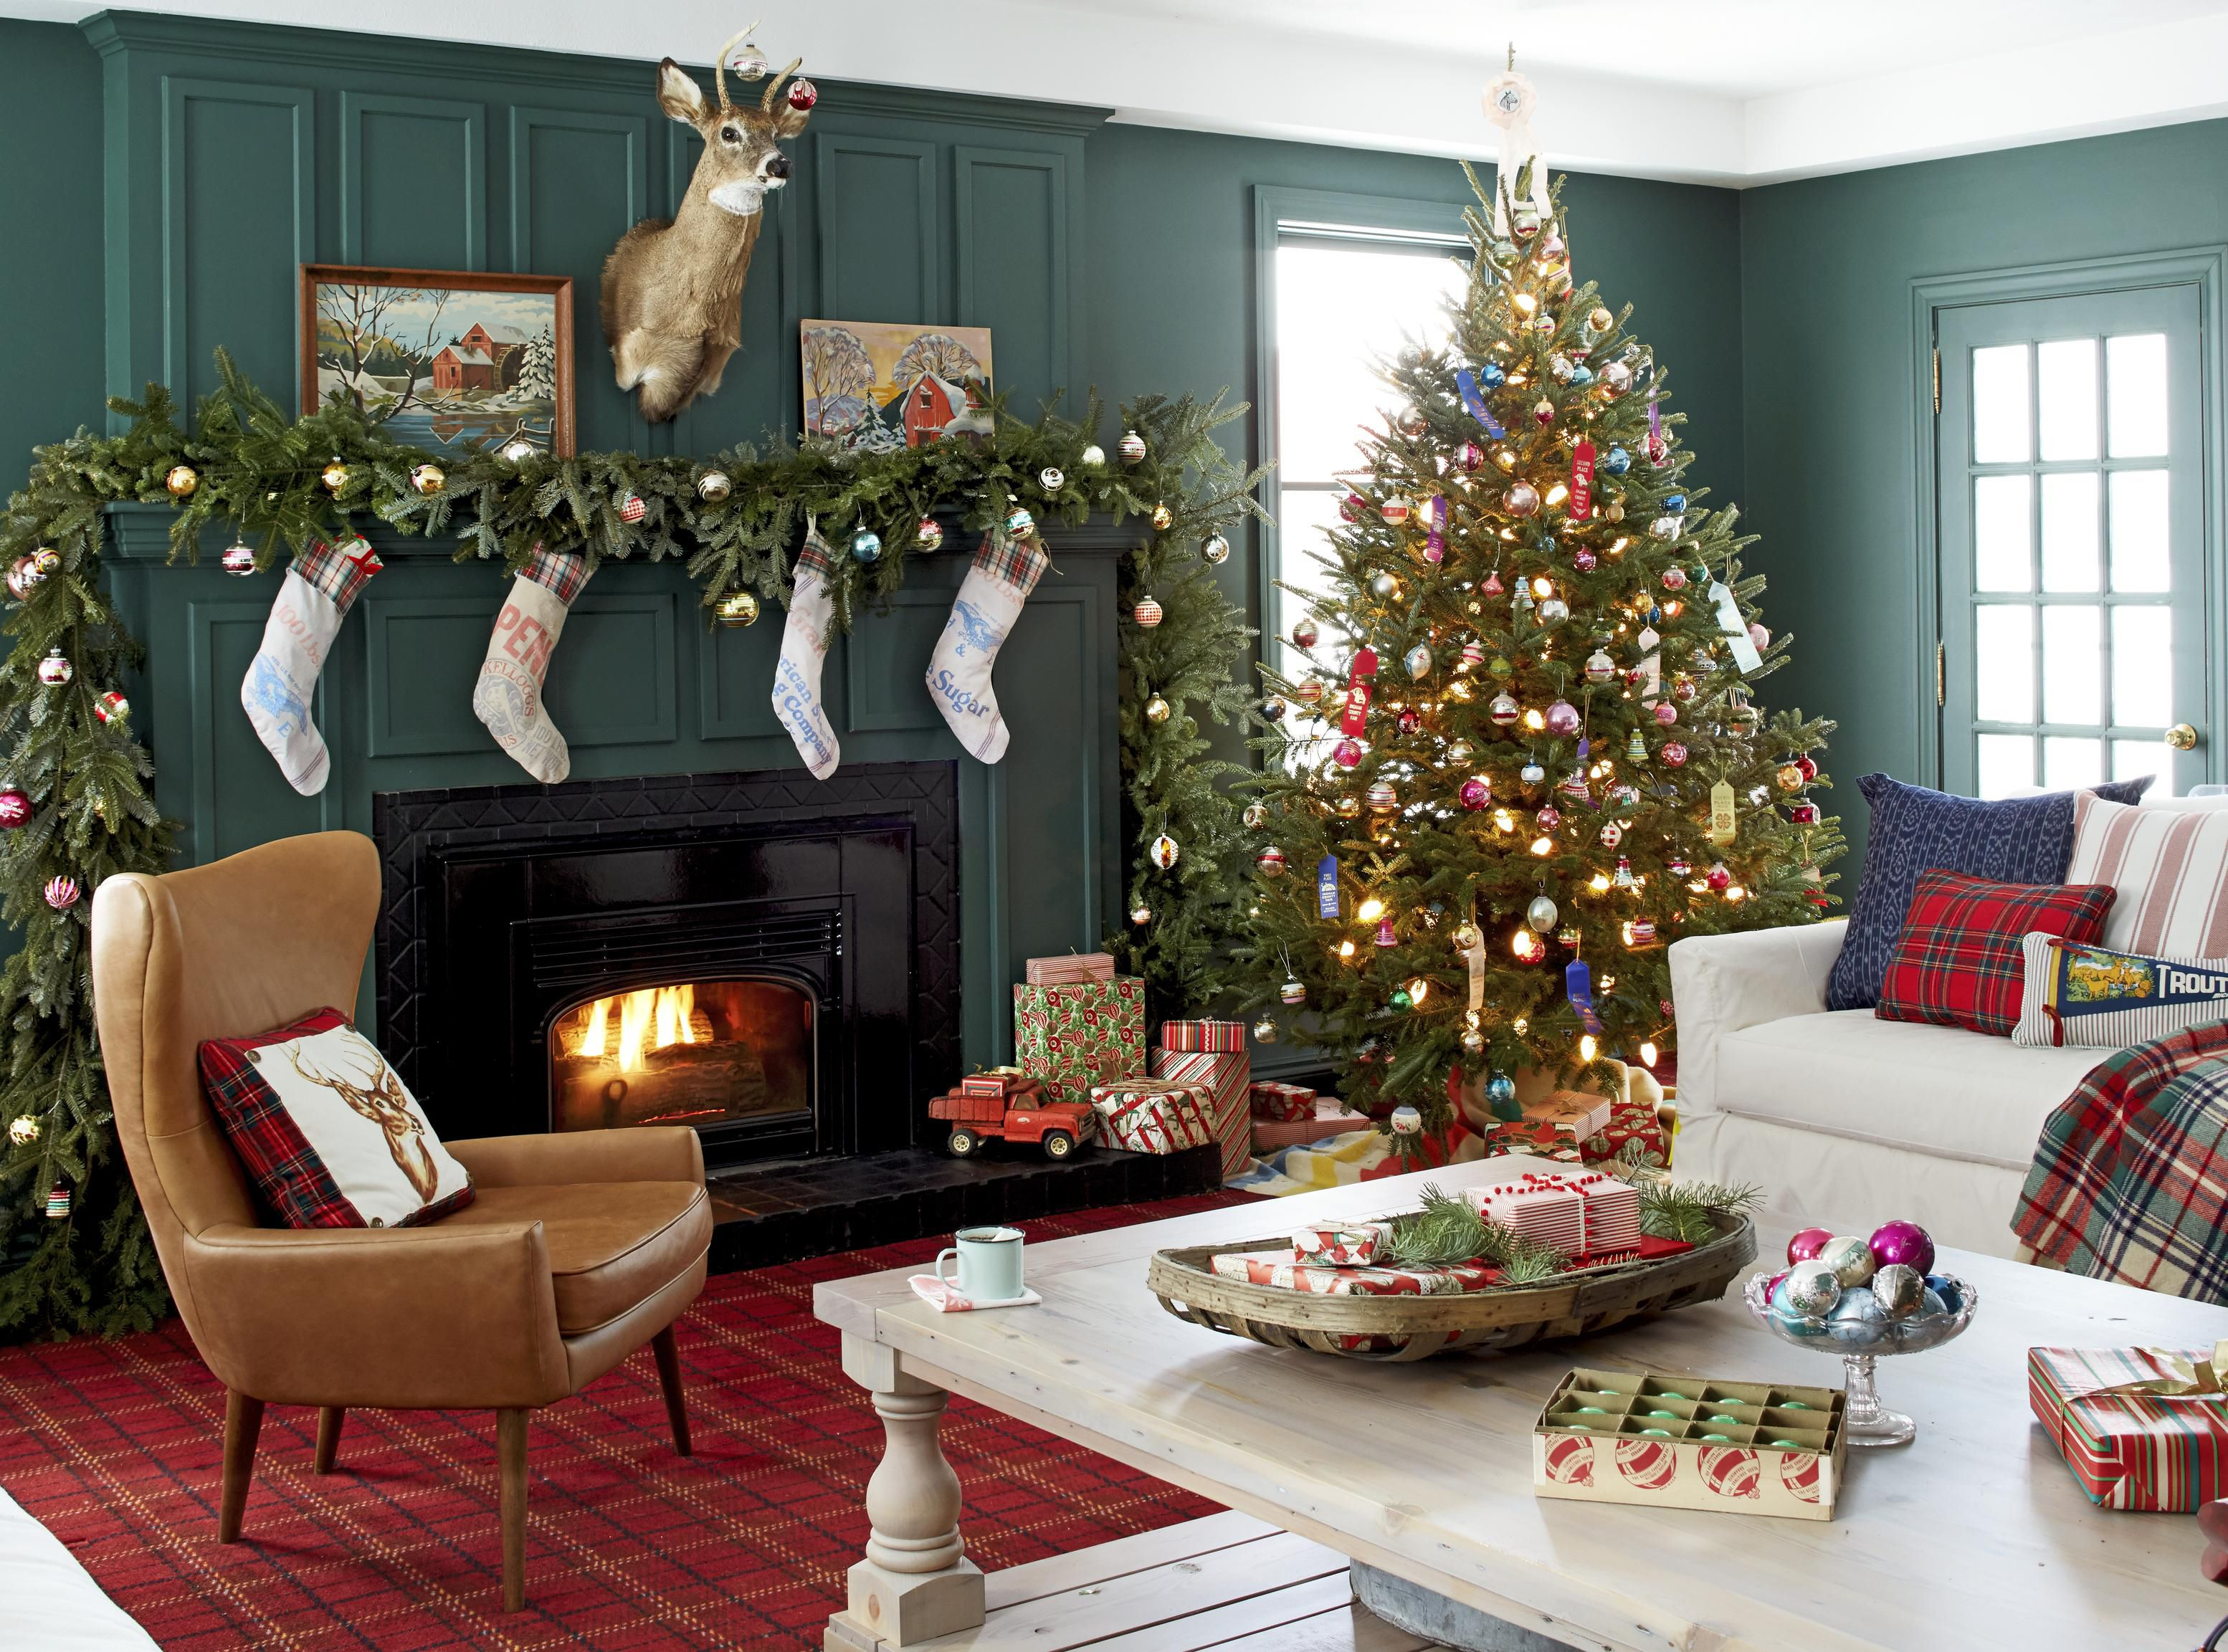 20 Christmas Living Room Decorating Ideas , How to Decorate